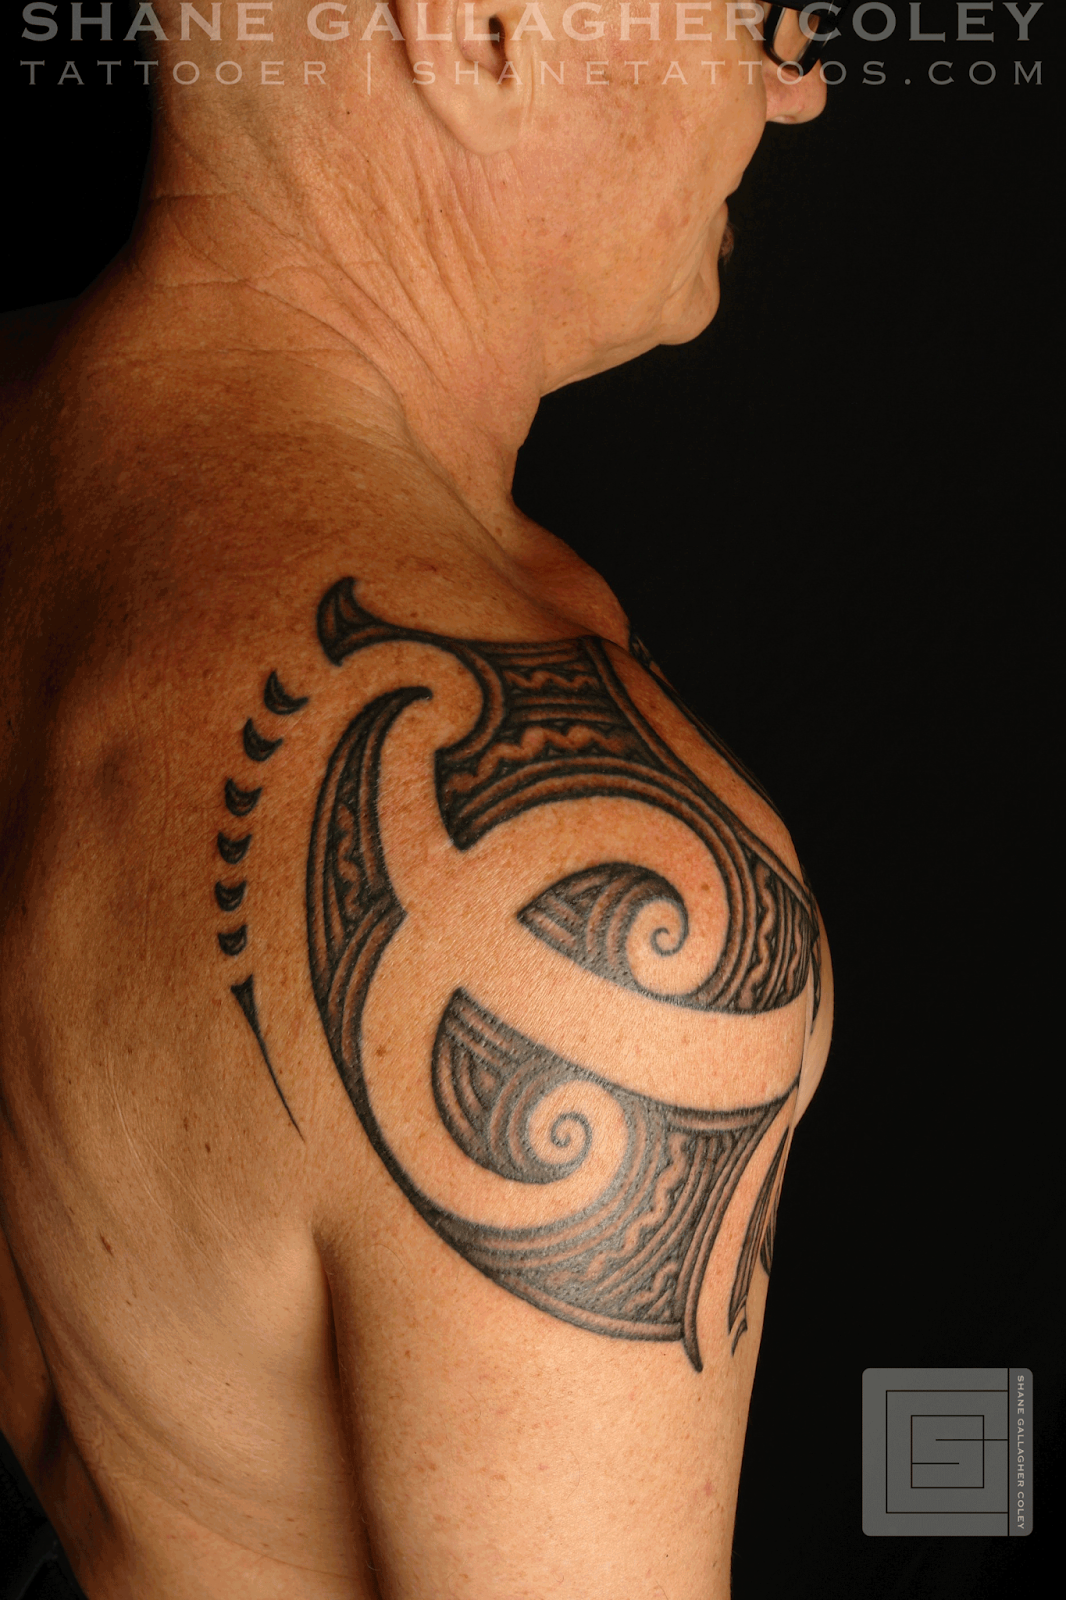 MAORI POLYNESIAN TATTOO: Maori Shoulder Chest Ta Moko/Tattoo